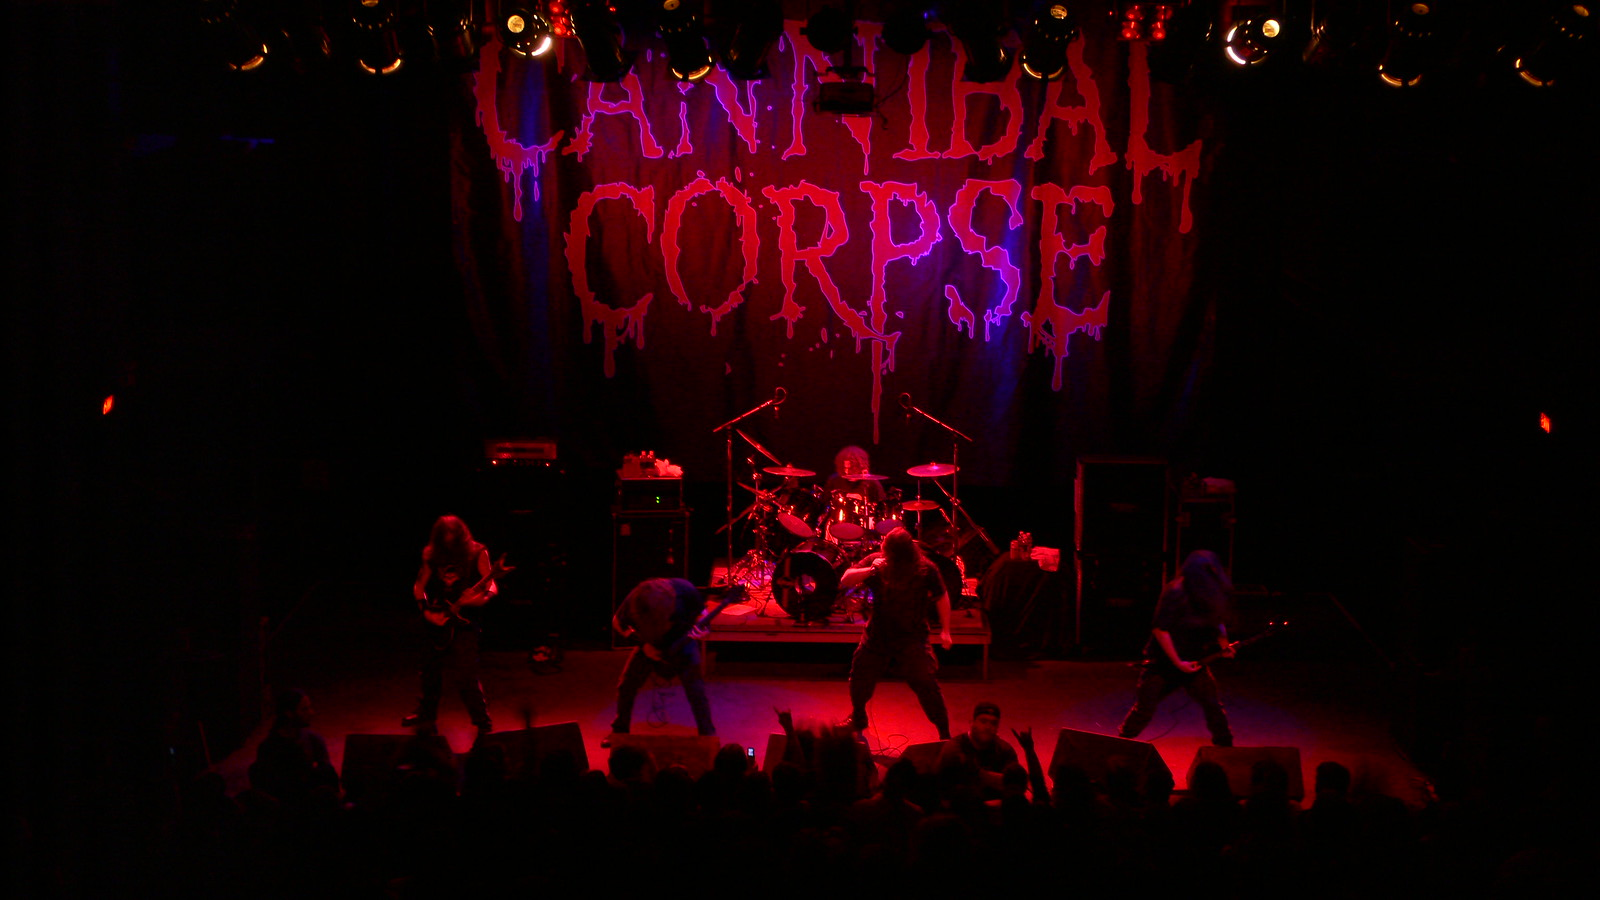 Cannibal Corpse at the 9:30 Club